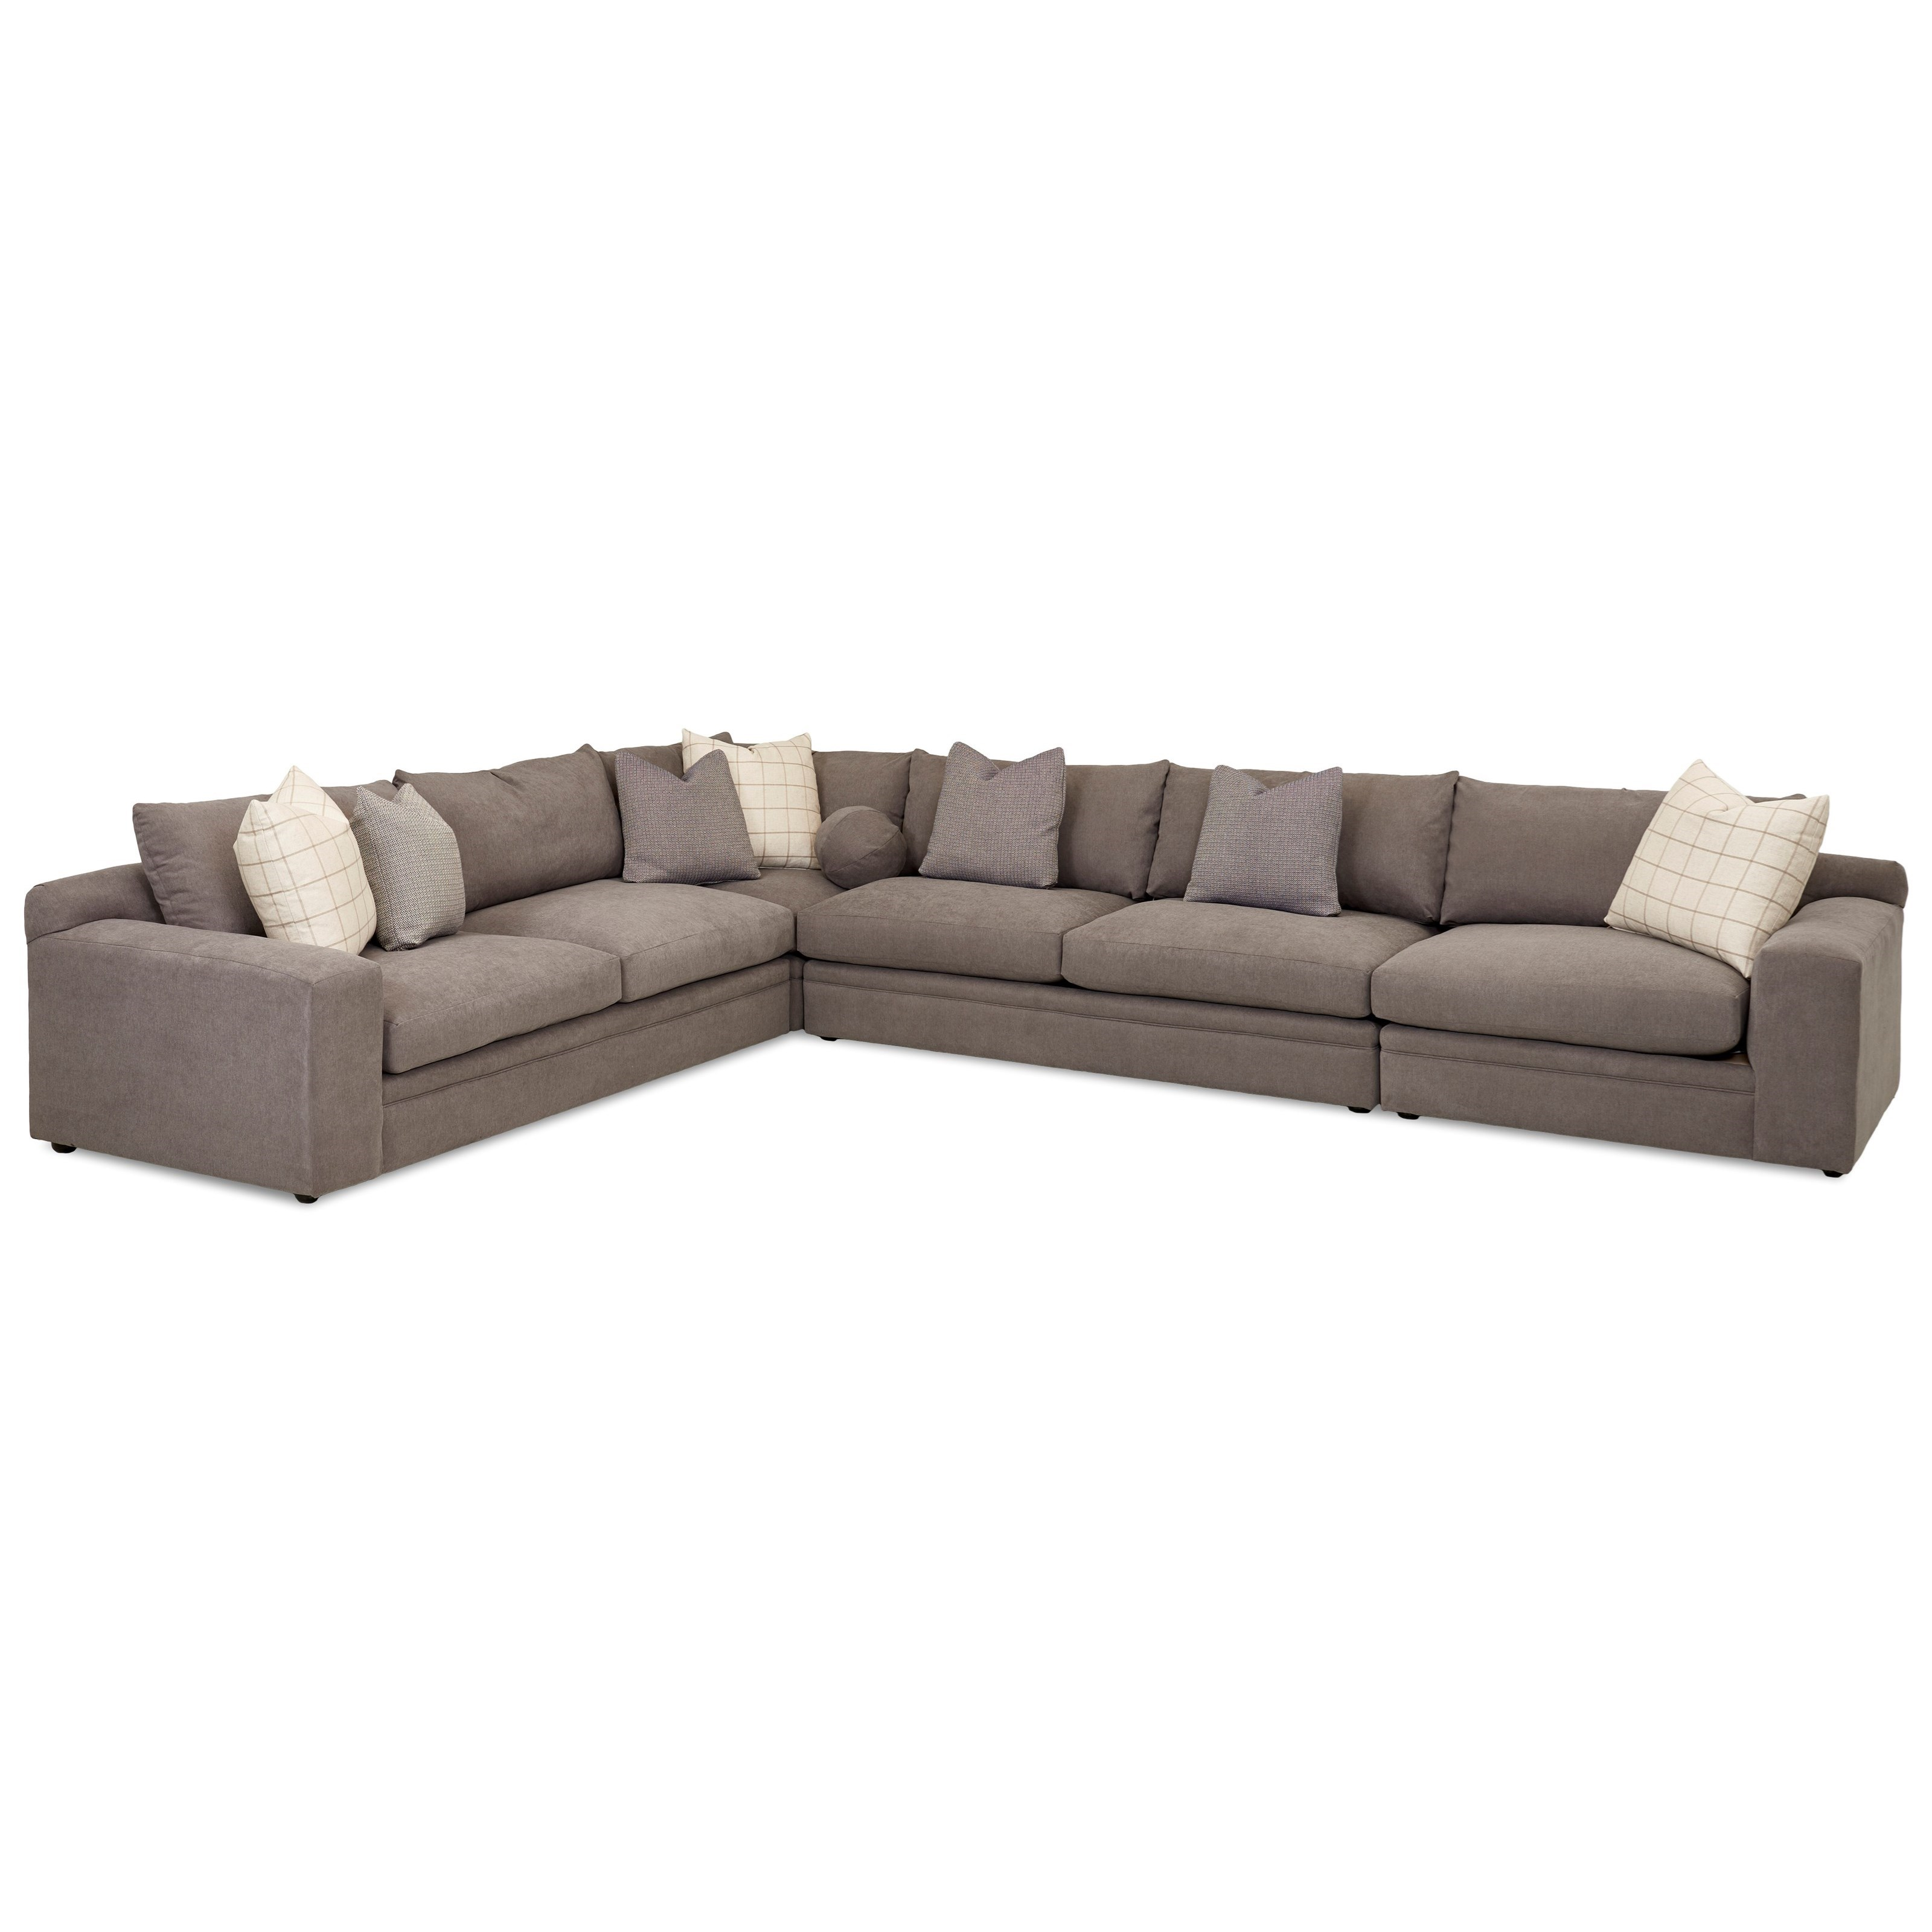 Casa Mesa 4 Pc Sectional Sofa w/ RAF Chair by Klaussner at Johnny Janosik